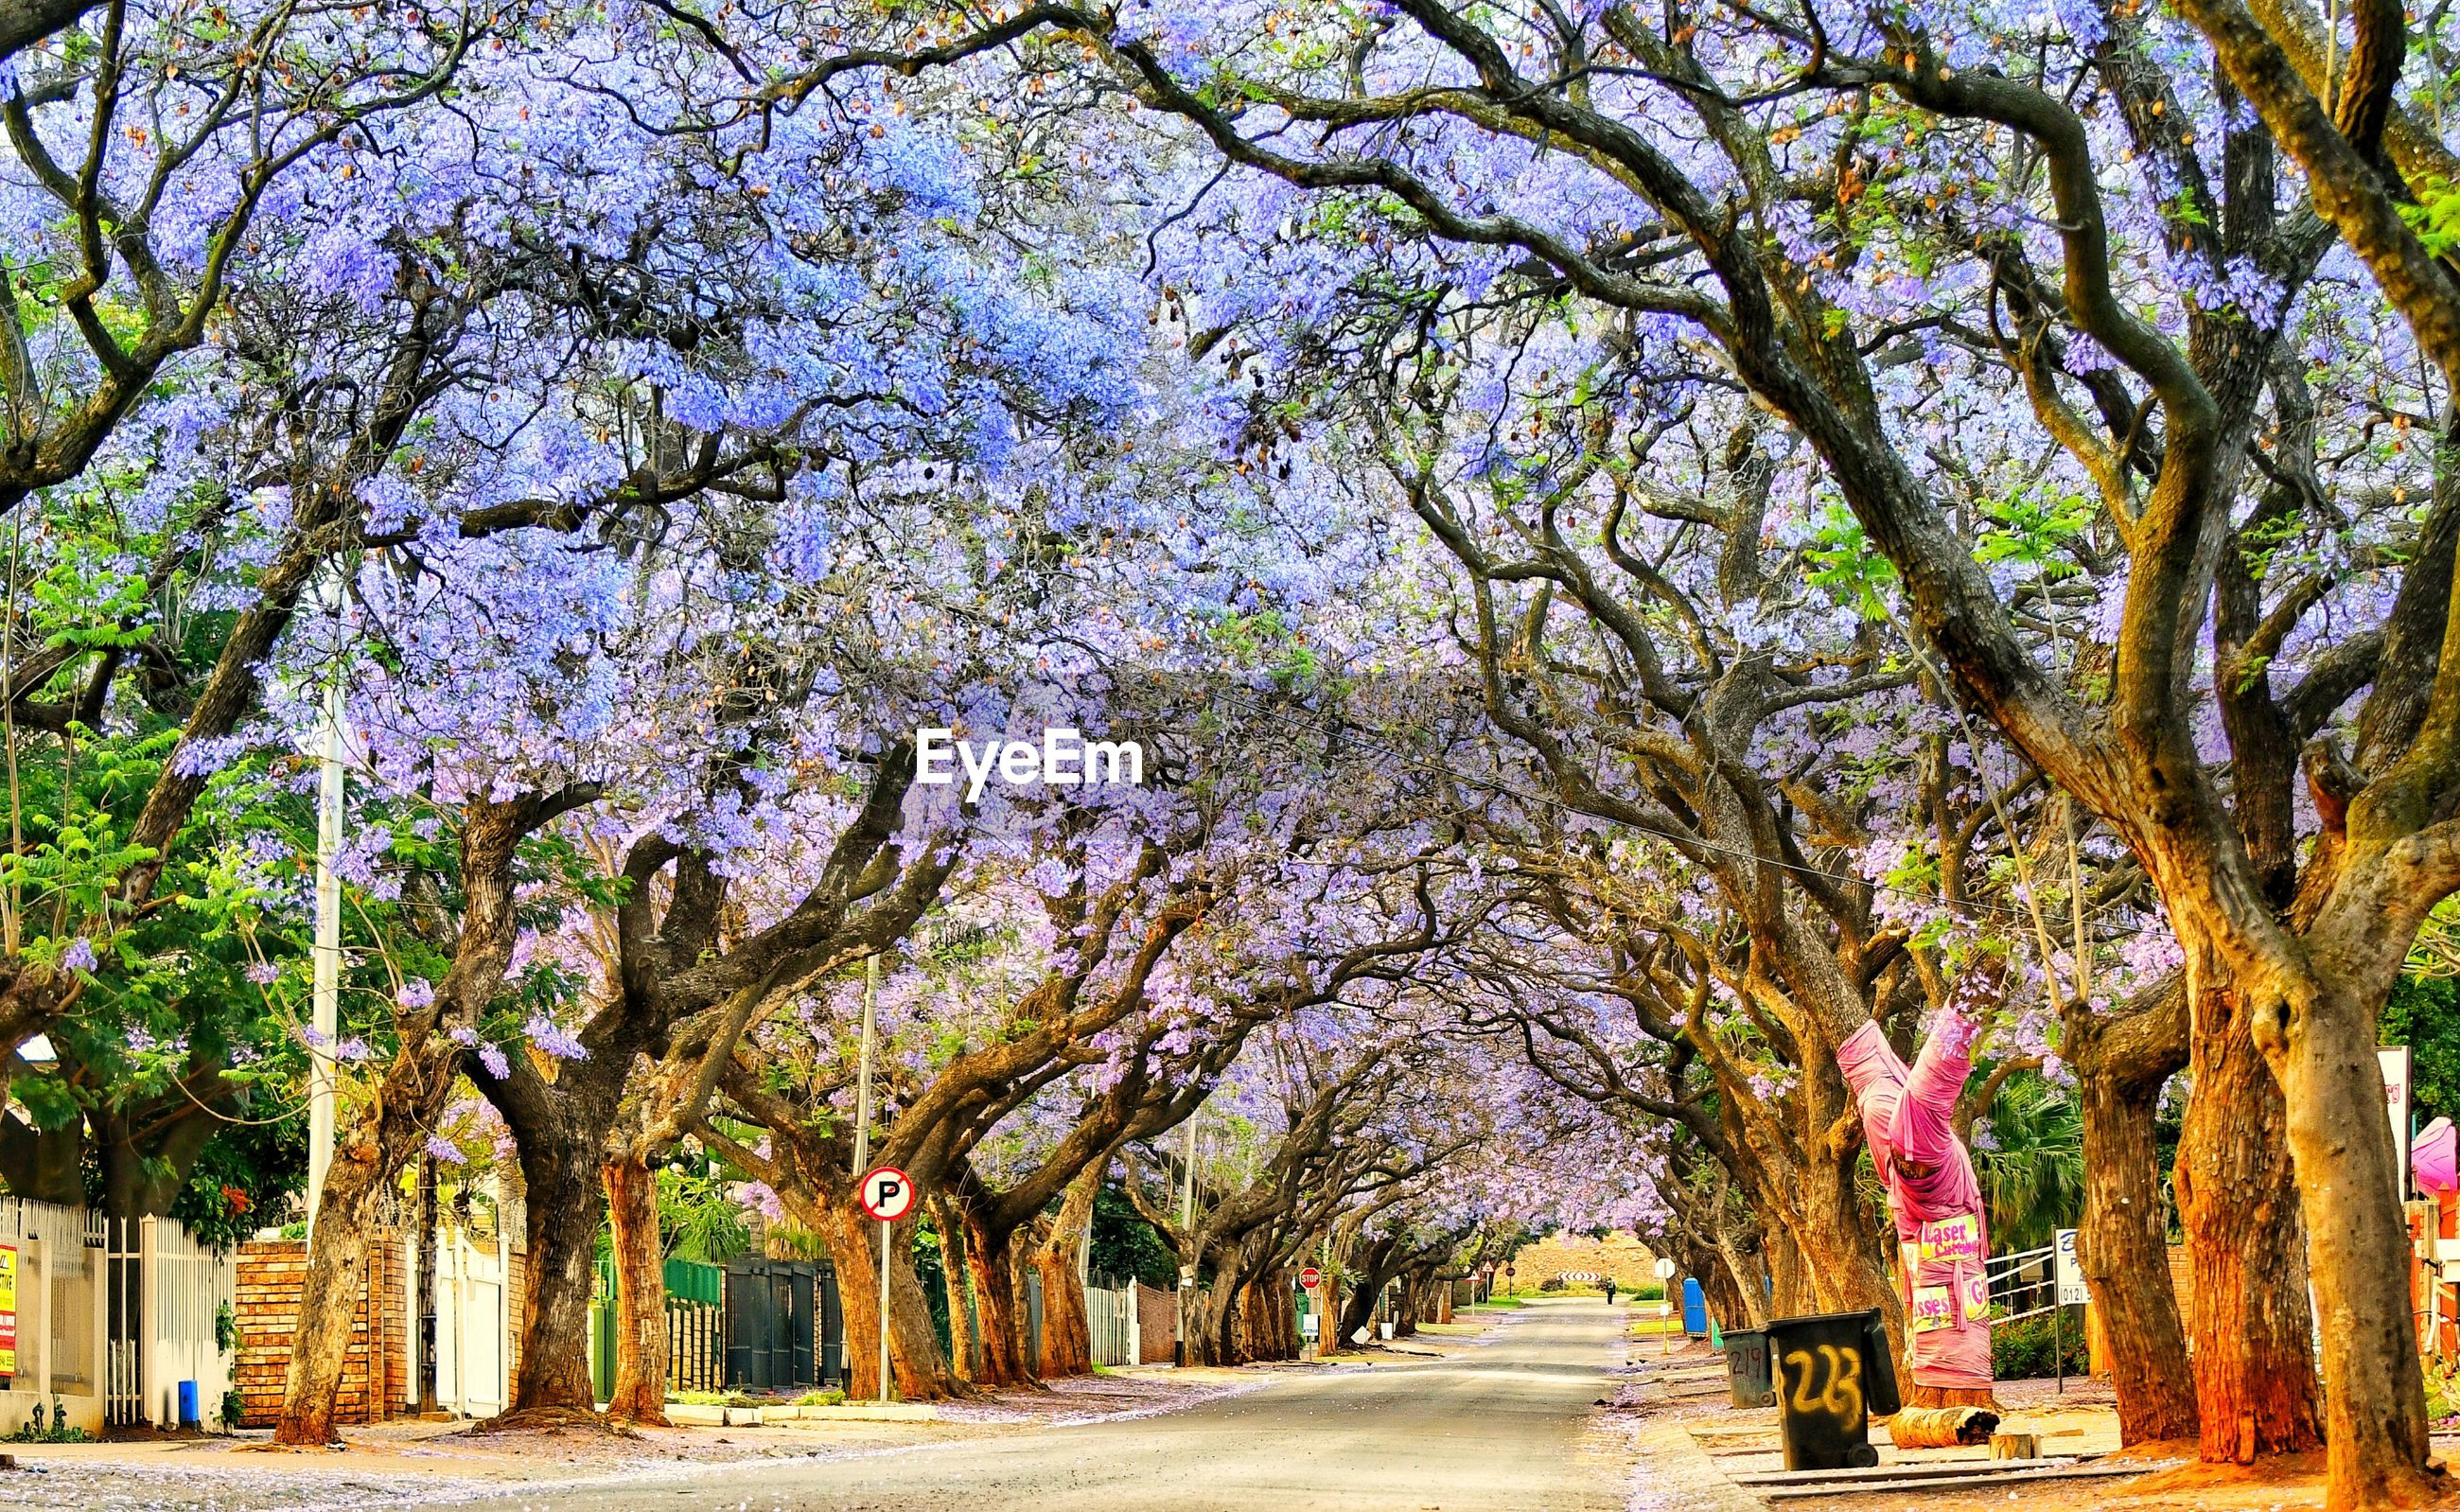 VIEW OF FLOWER TREES IN ROAD